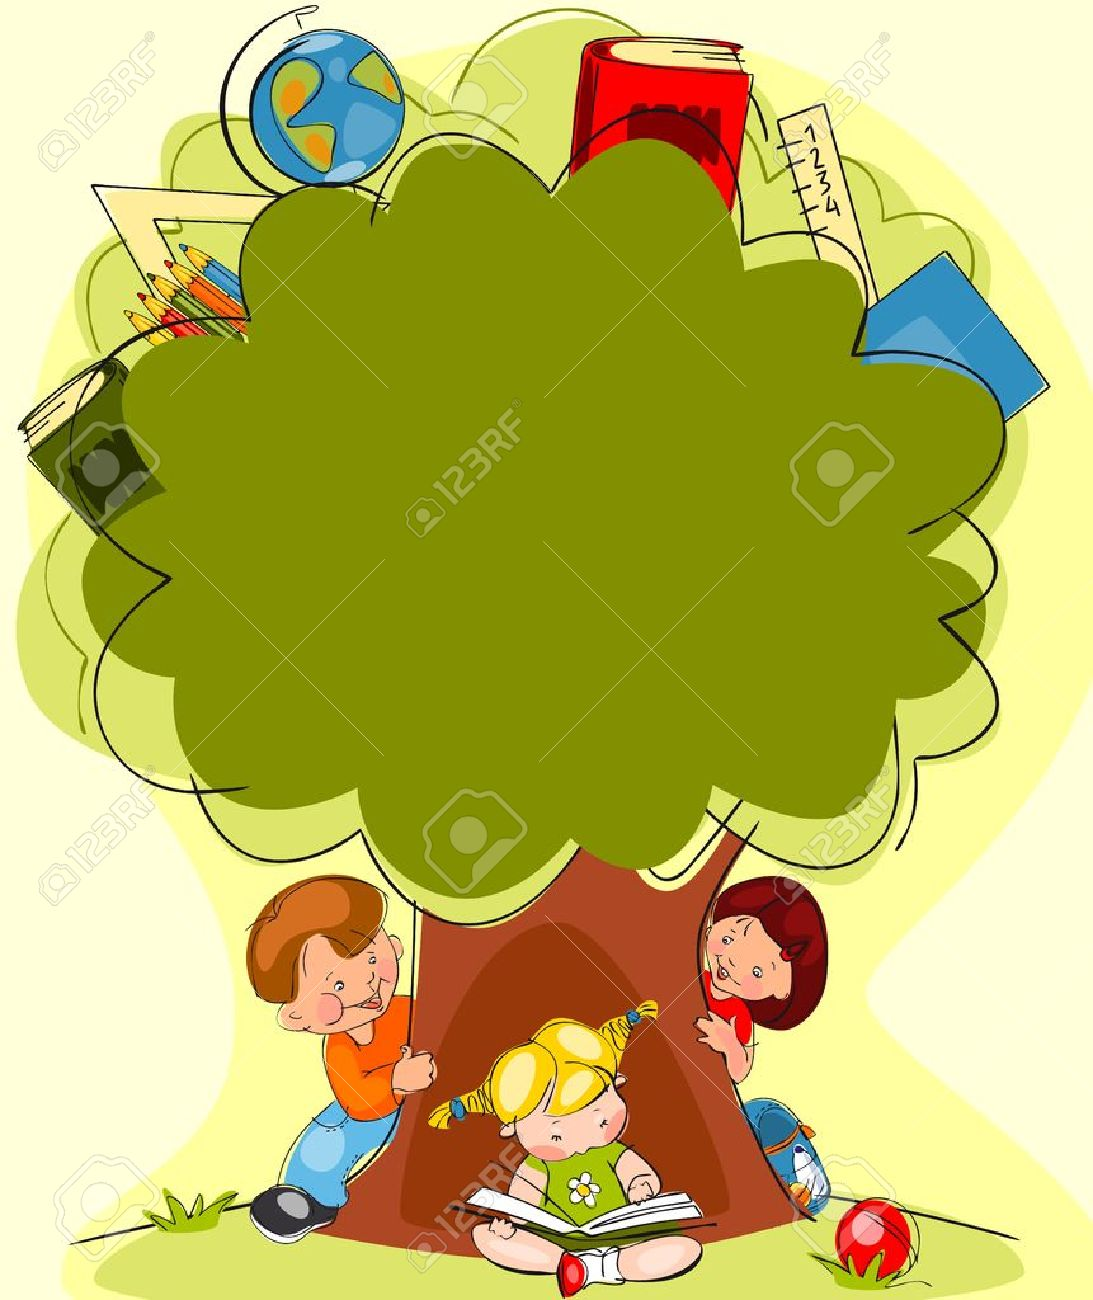 school children under the tree of knowledge Place for text - 21394481